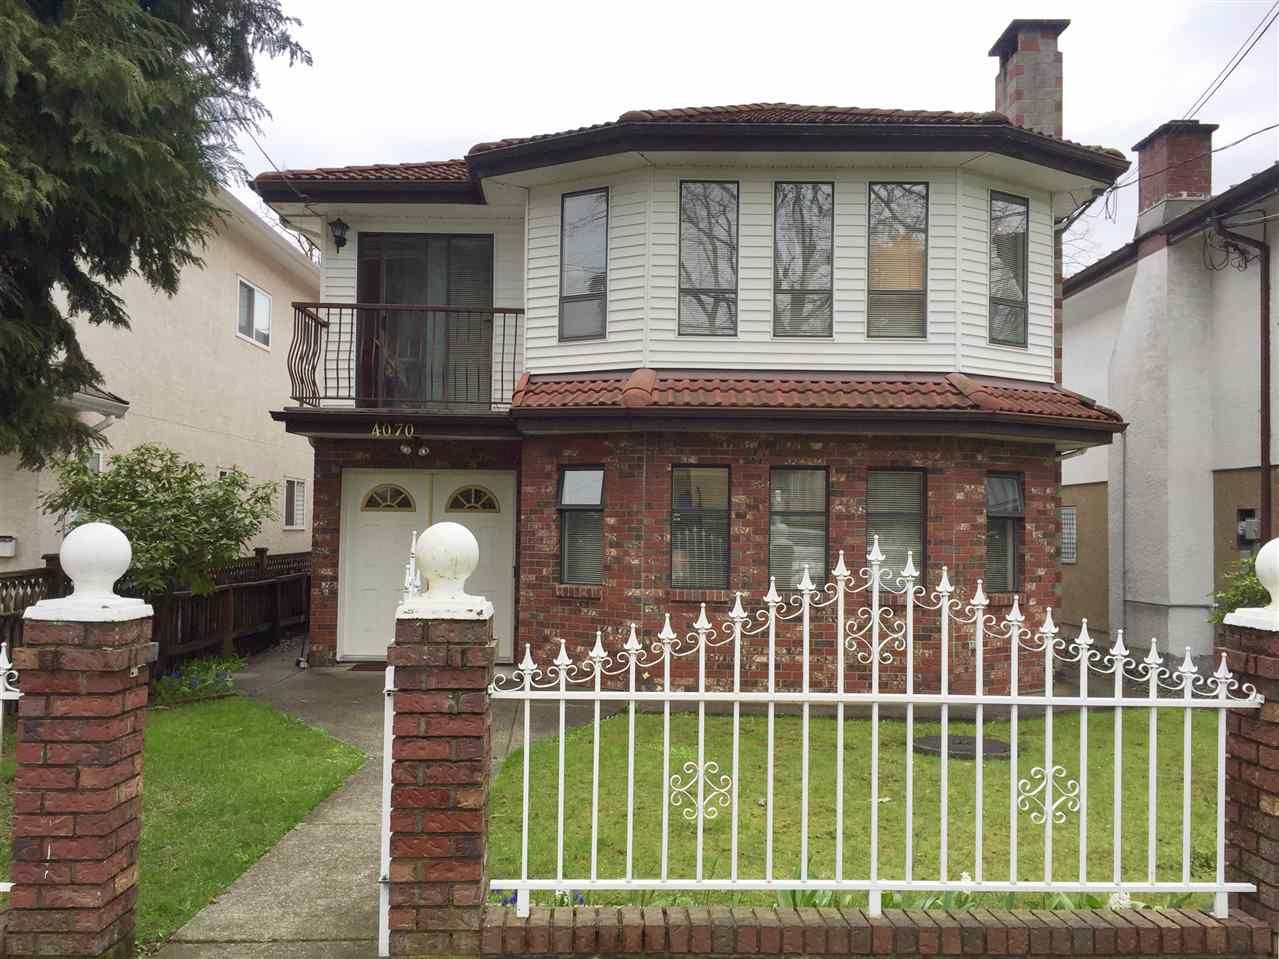 Main Photo: 4070 MILLER STREET in Vancouver: Victoria VE House for sale (Vancouver East)  : MLS®# R2252911